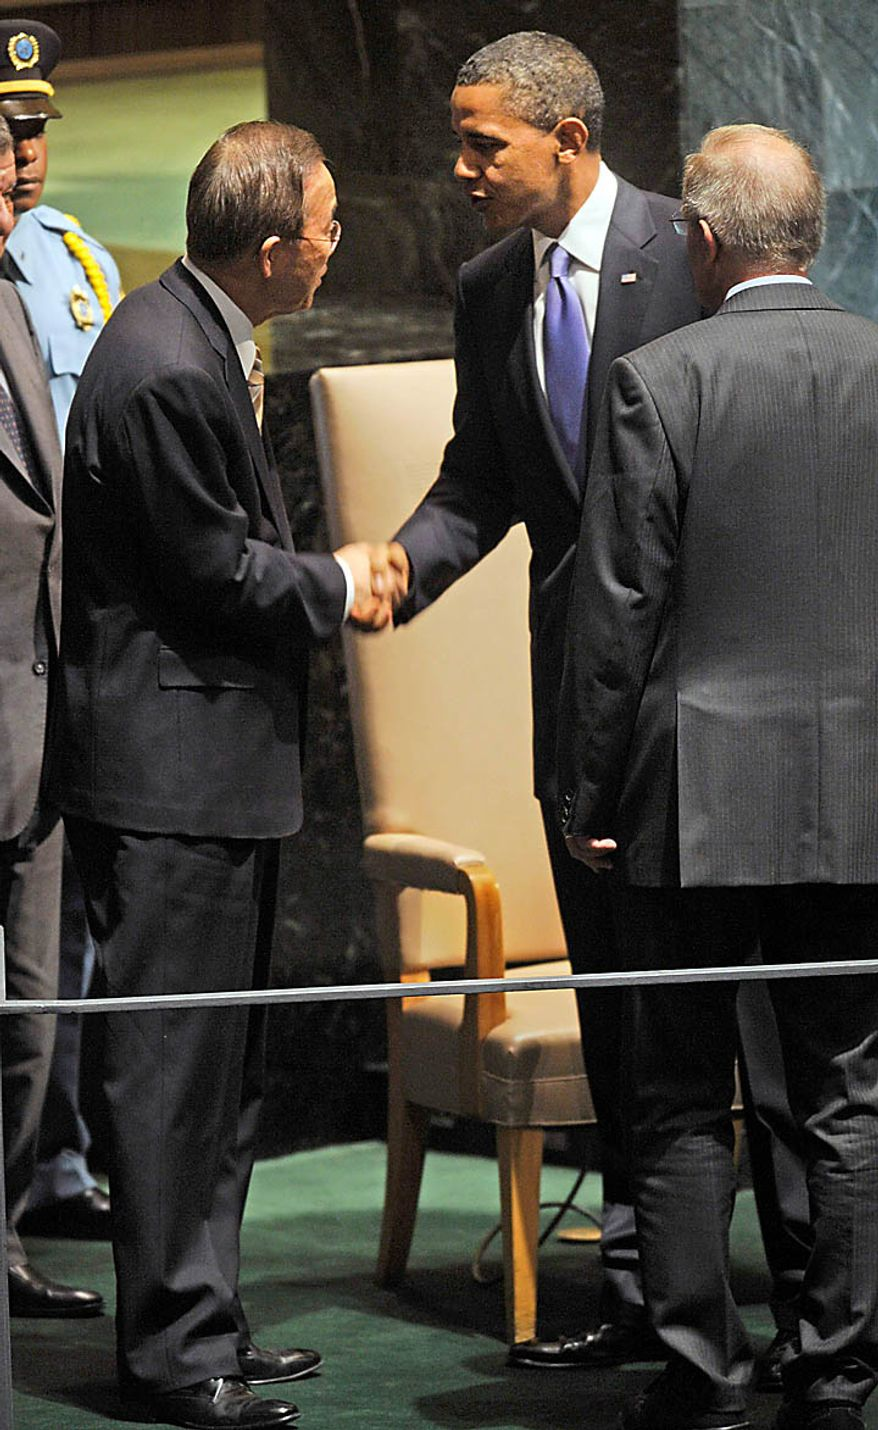 U.S. President Barack Obama, center, shakes hands with United Nations Secretary-General Ban Ki-moon after addressing the United Nations General Assembly at United Nations headquarters on Thursday, Sept. 23, 2010. Looking on at right is General Assembly President Joseph Deiss. (AP Photo/Henny Ray Abrams)